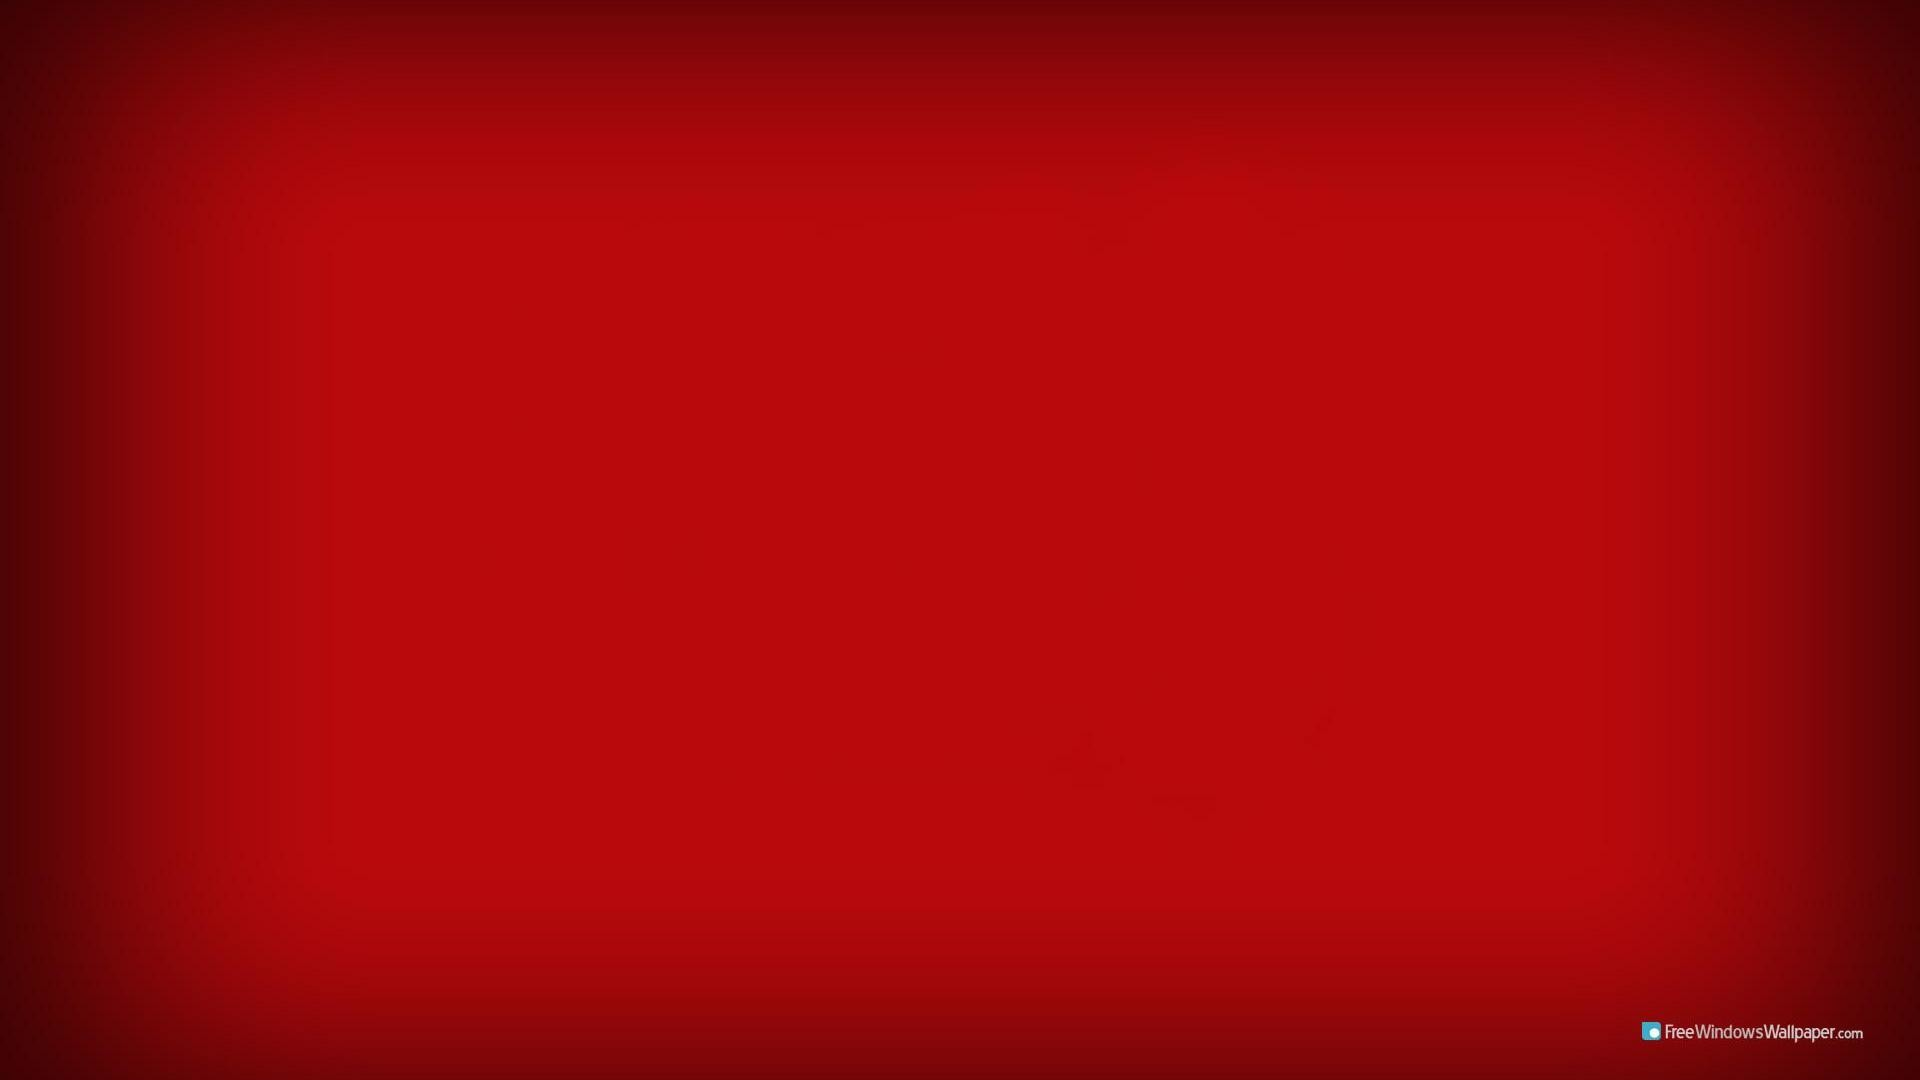 1920x1080 Solid Red Wallpaper